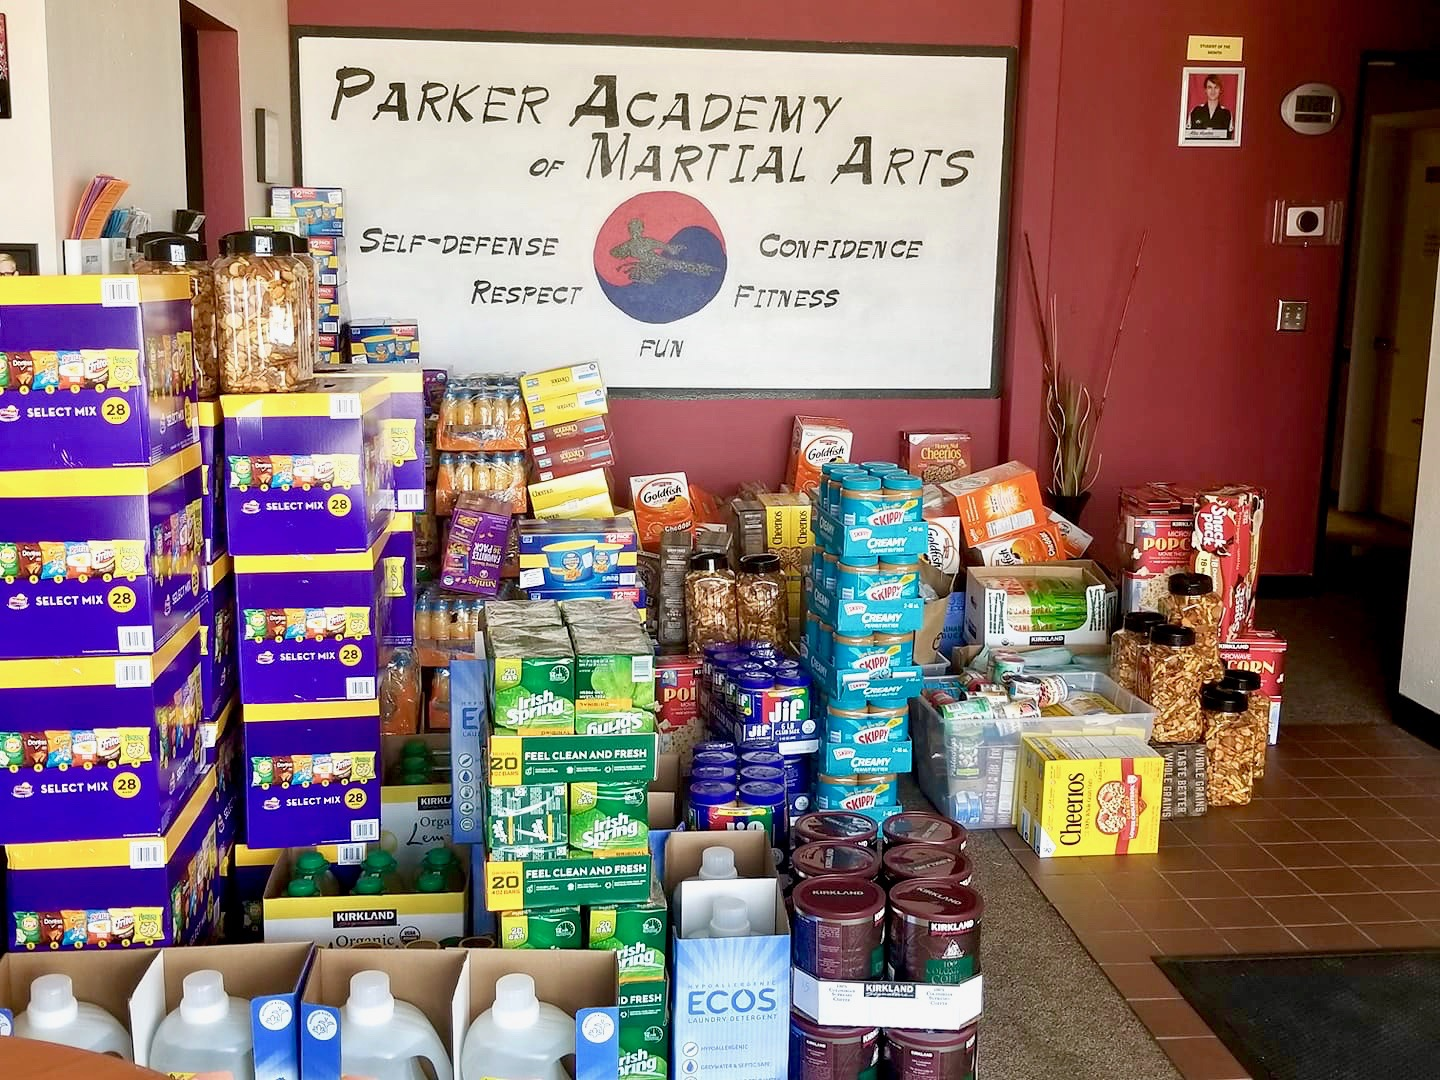 Friends of PAMA Giving Back